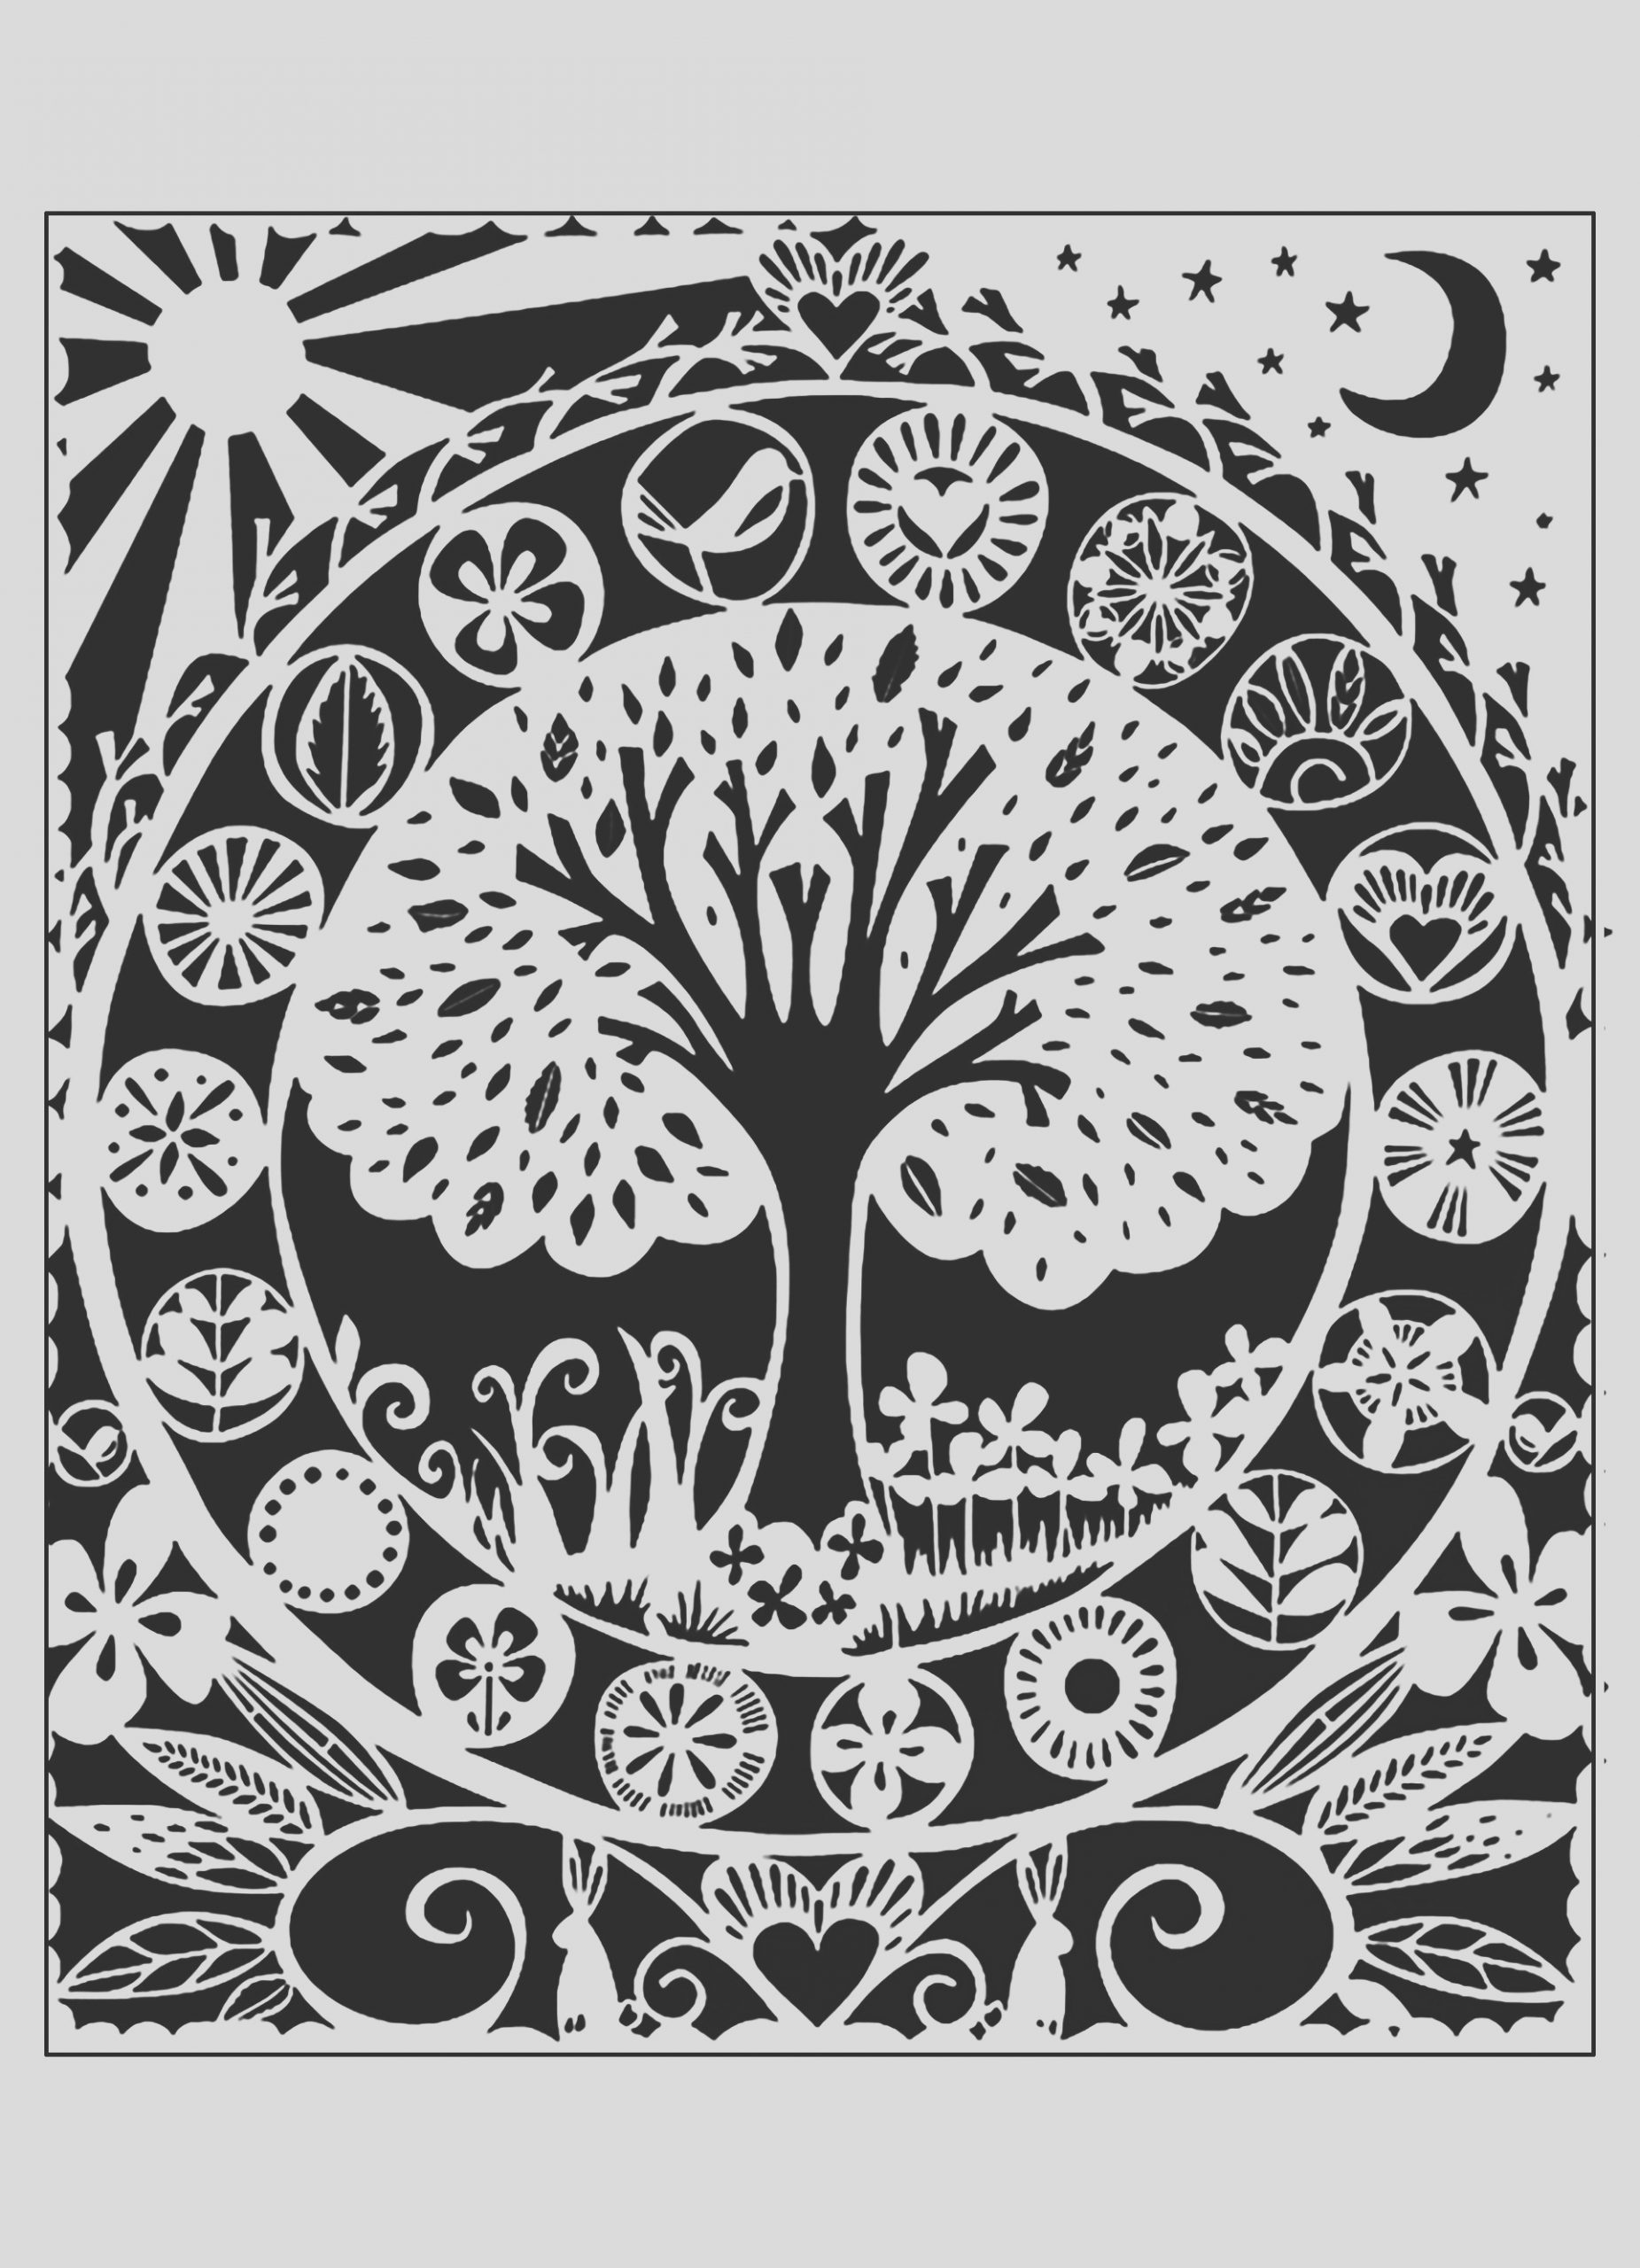 image=fleurs et ve ation coloring adult tree white black 2 1